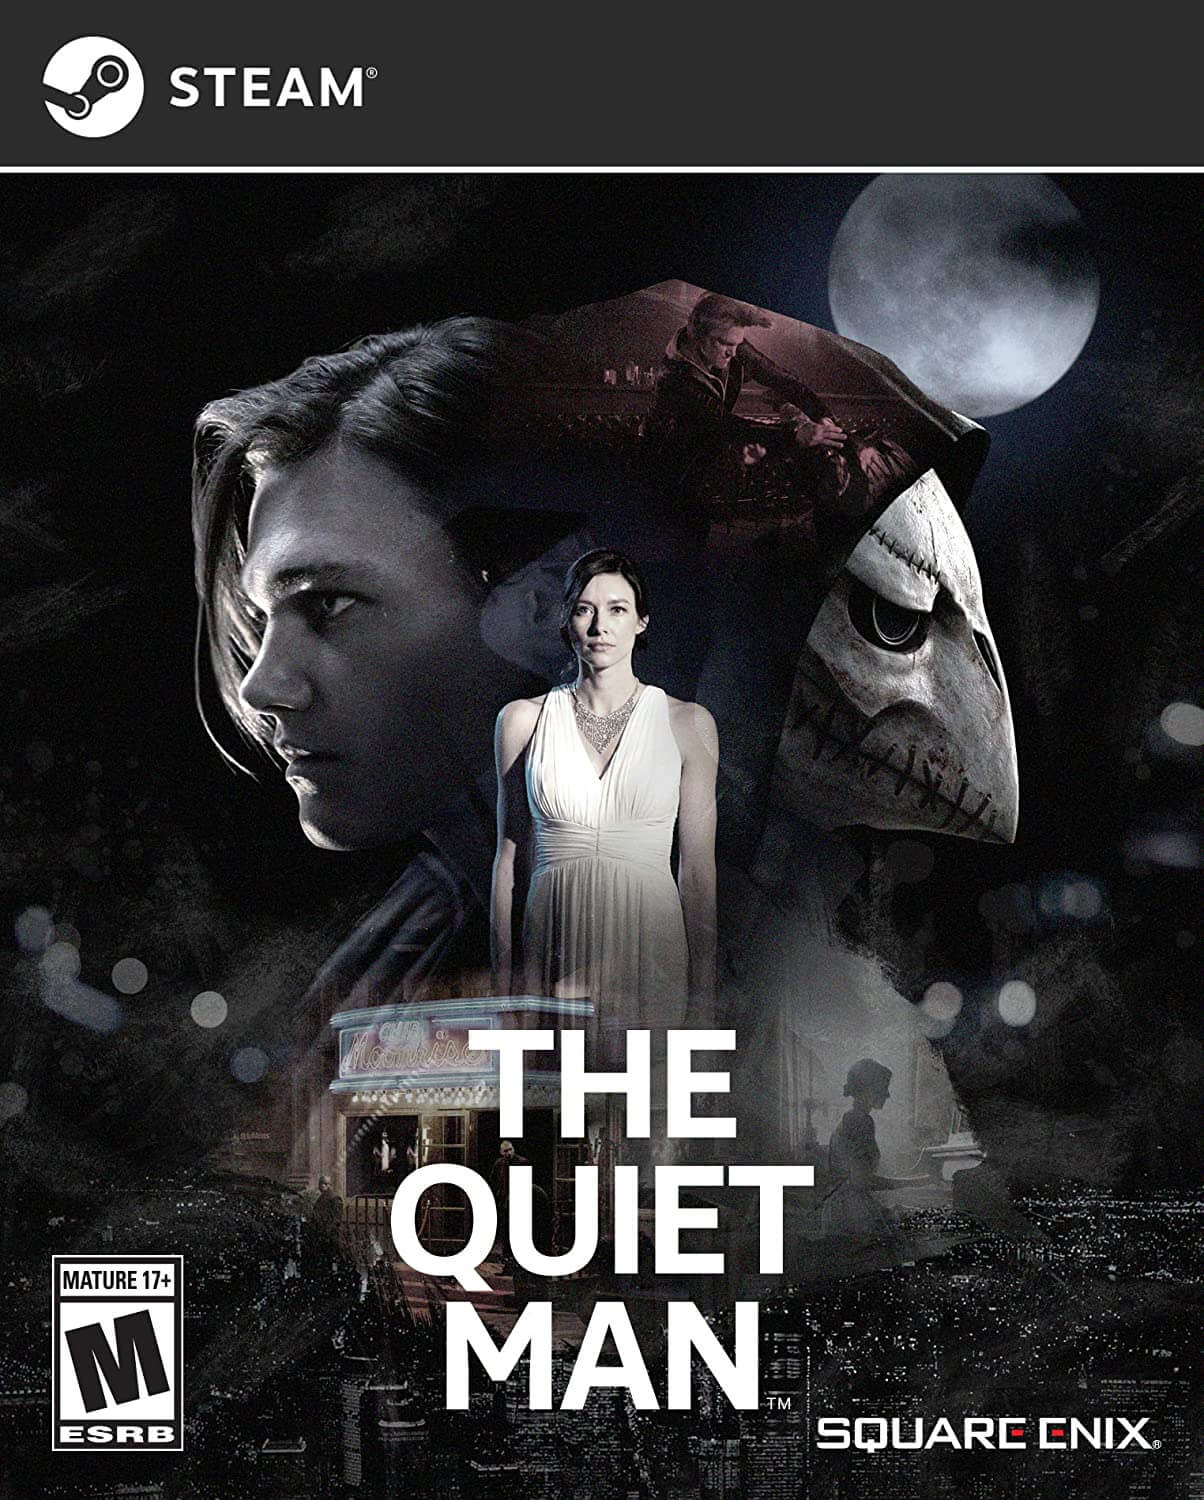 https://img5.downloadha.com/hosein/files/2020/06/THE-QUIET-MAN-pc-cover-large.jpg